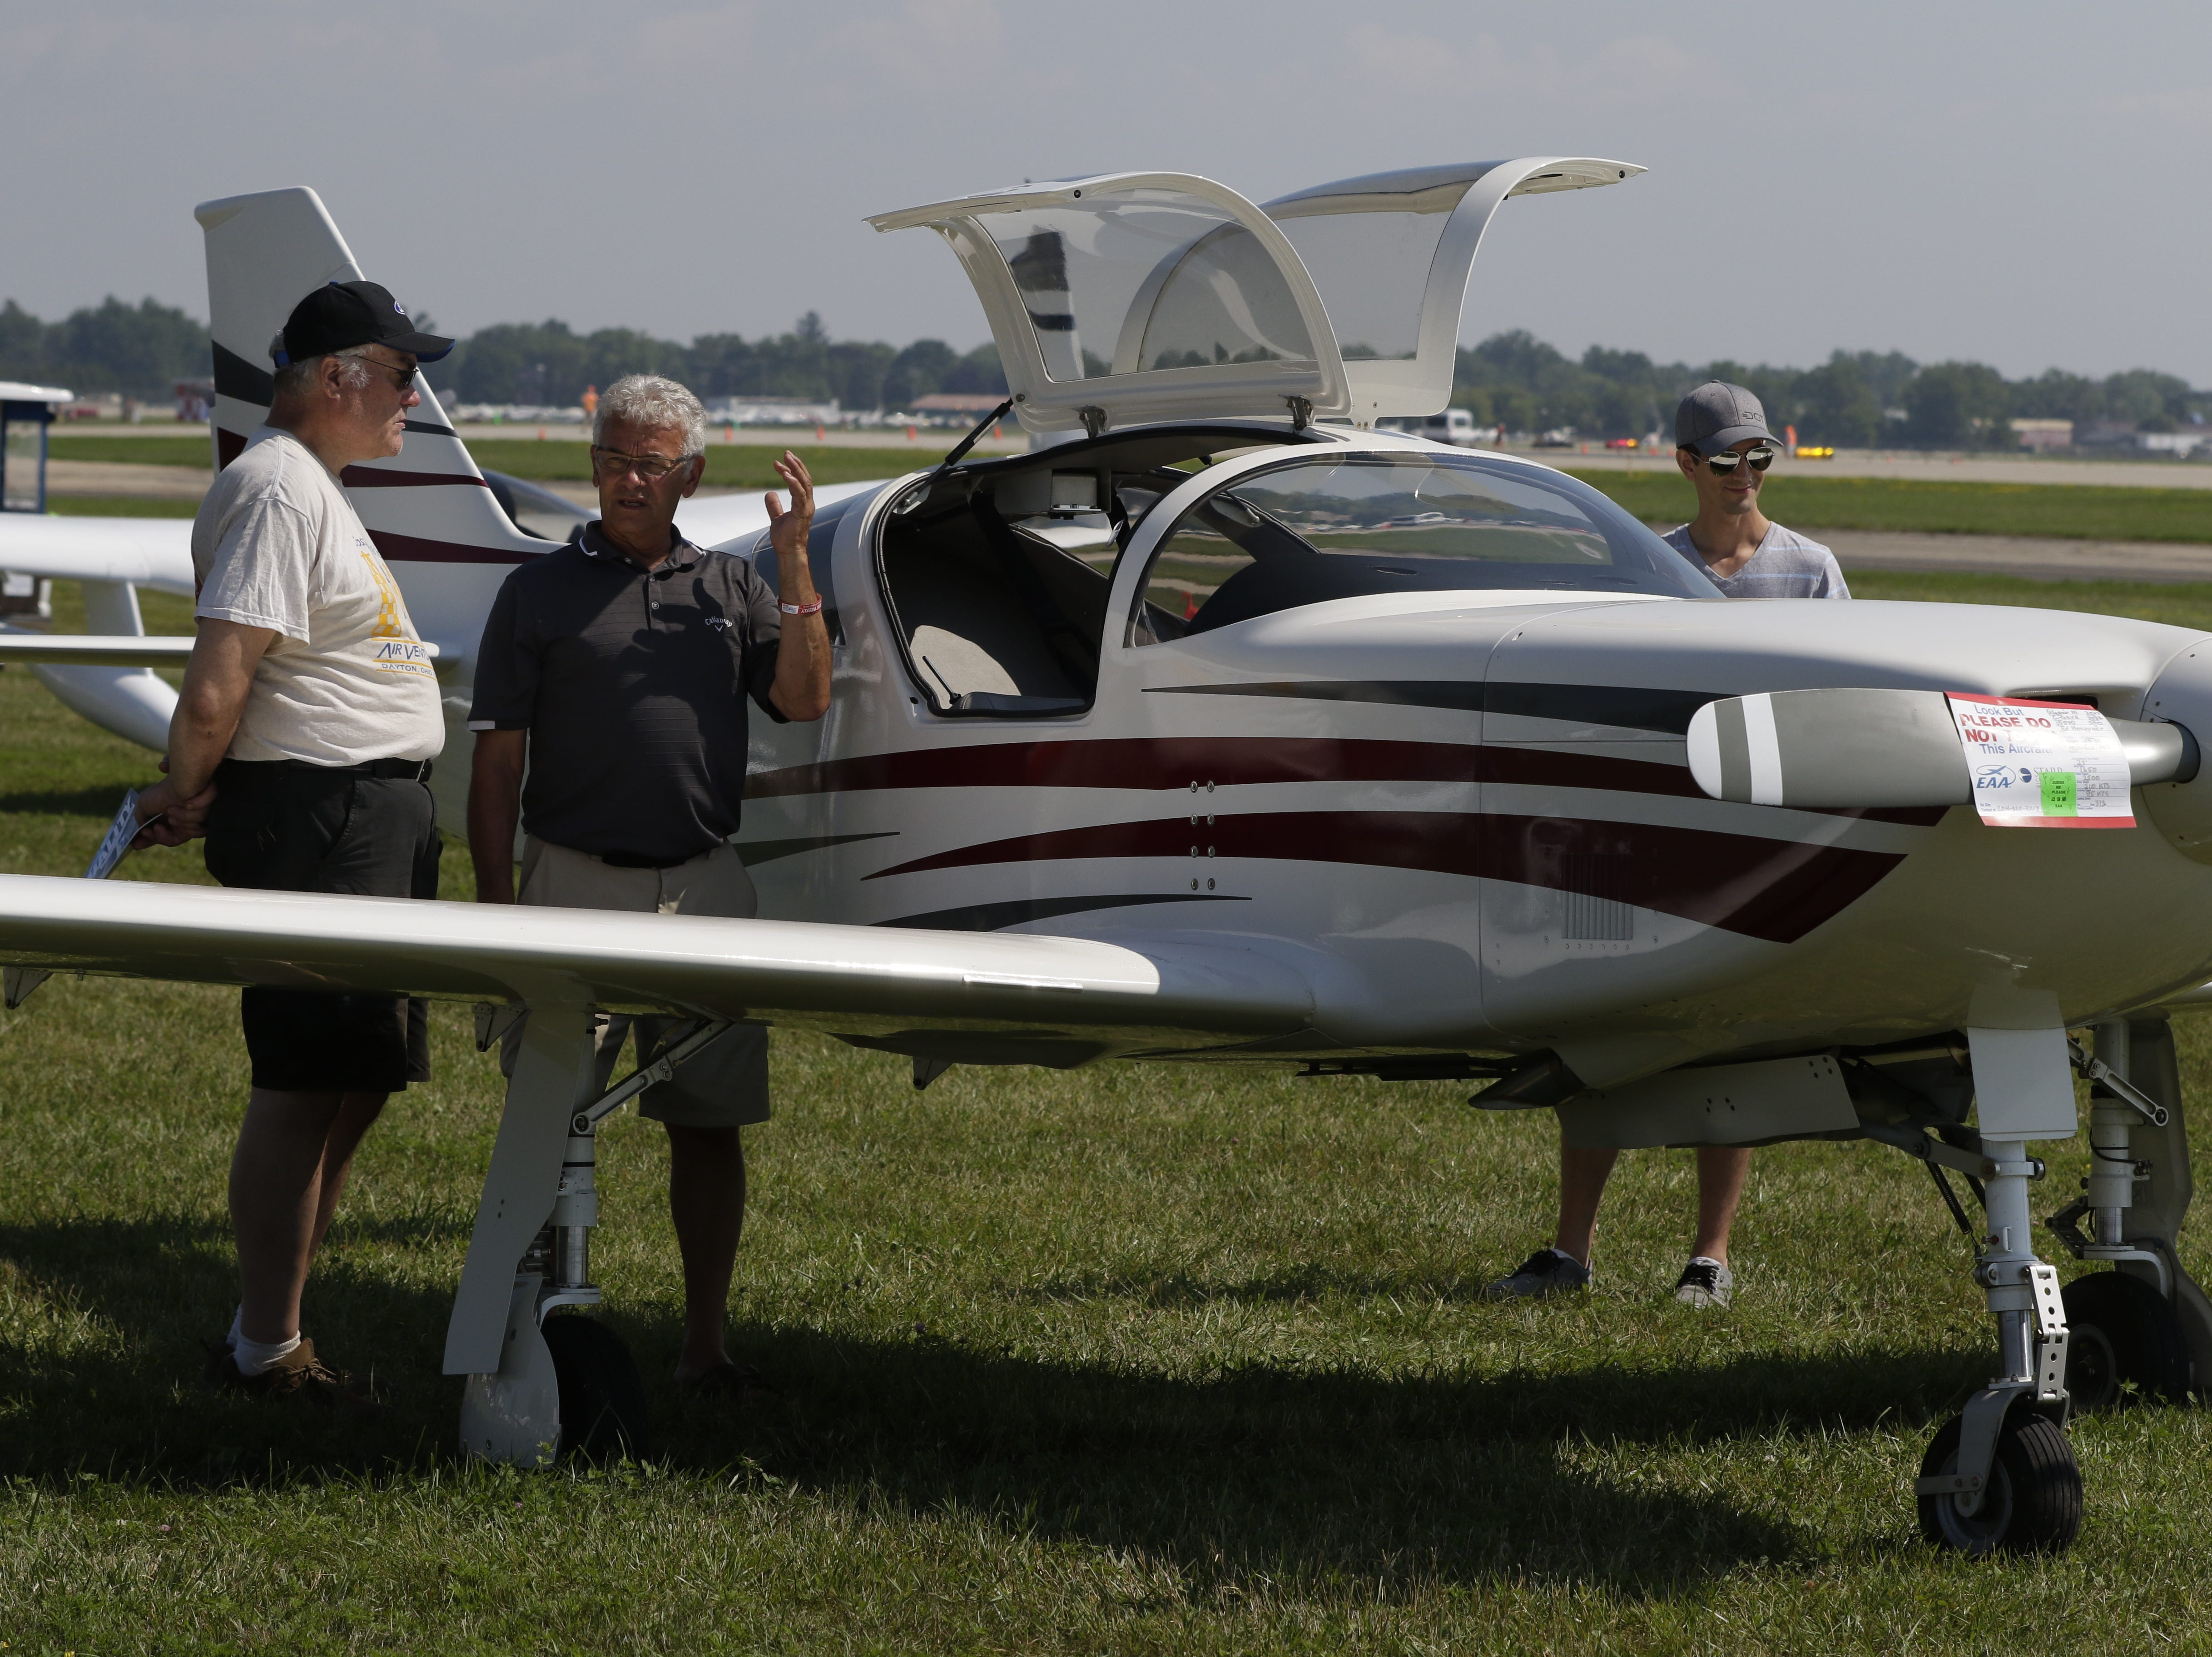 Bob Reilly of Marshfield, Mass., talks with Ed Hoeppner along with Tom Hoeppner of Manitoba, Canada talks about their GlassAir 3, Tuesday, July 24, 2018, in Oshkosh, Wis.  The 66th annual Experimental Aircraft Association Fly-In Convention, AirVenture 2018 draws over 500,000 people annually to the area.  The convention runs through July 29. Joe Sienkiewicz/USA Today NETWORK-Wisconsin